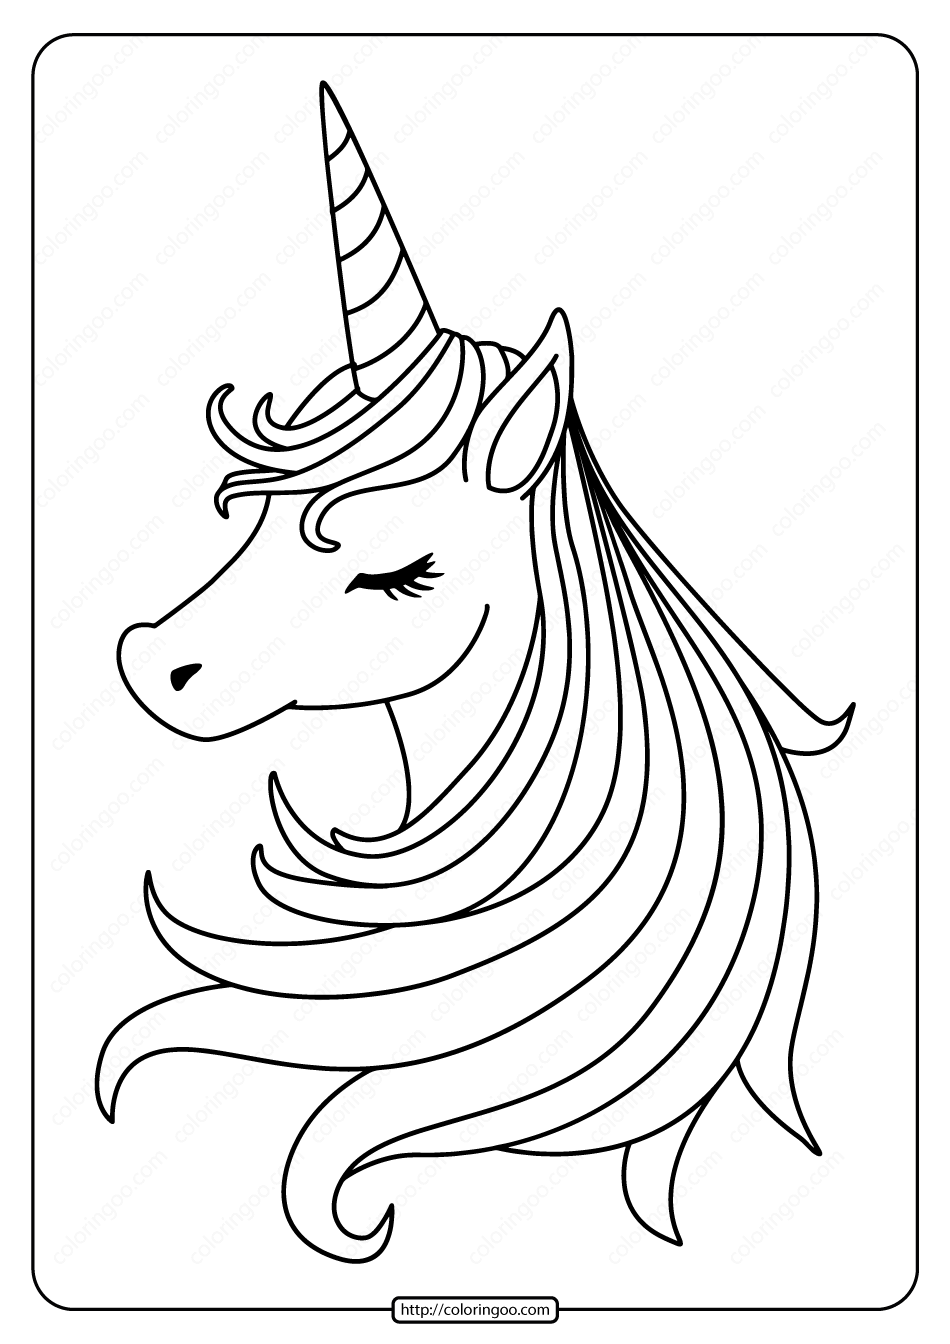 unicorn printables one unicorn39s cutie with cupcakes coloring pages for you printables unicorn